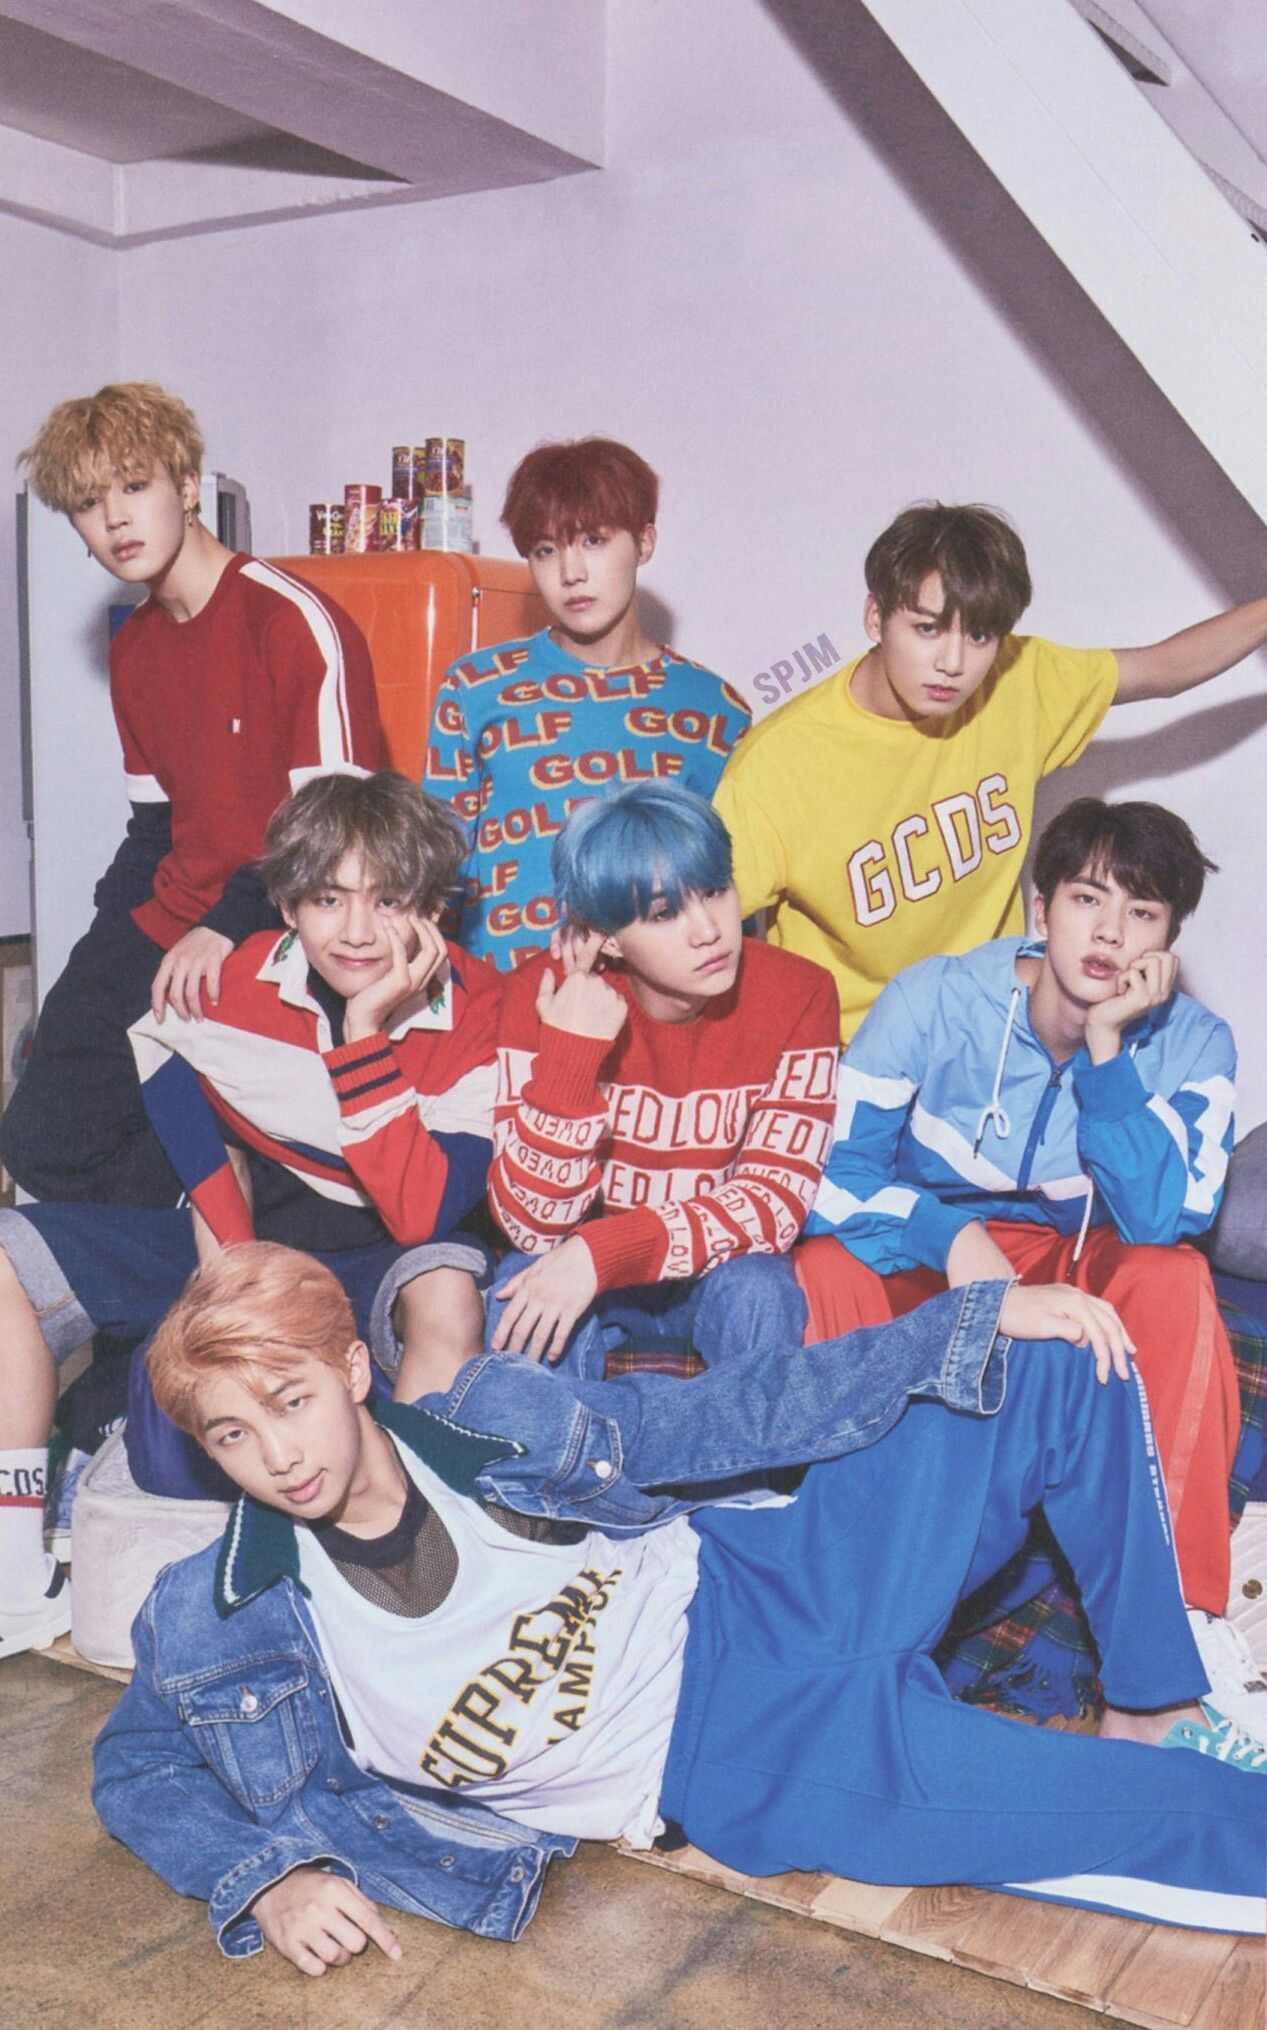 bts love yourself photoshoot 1267x2030 download hd wallpaper wallpapertip bts love yourself photoshoot